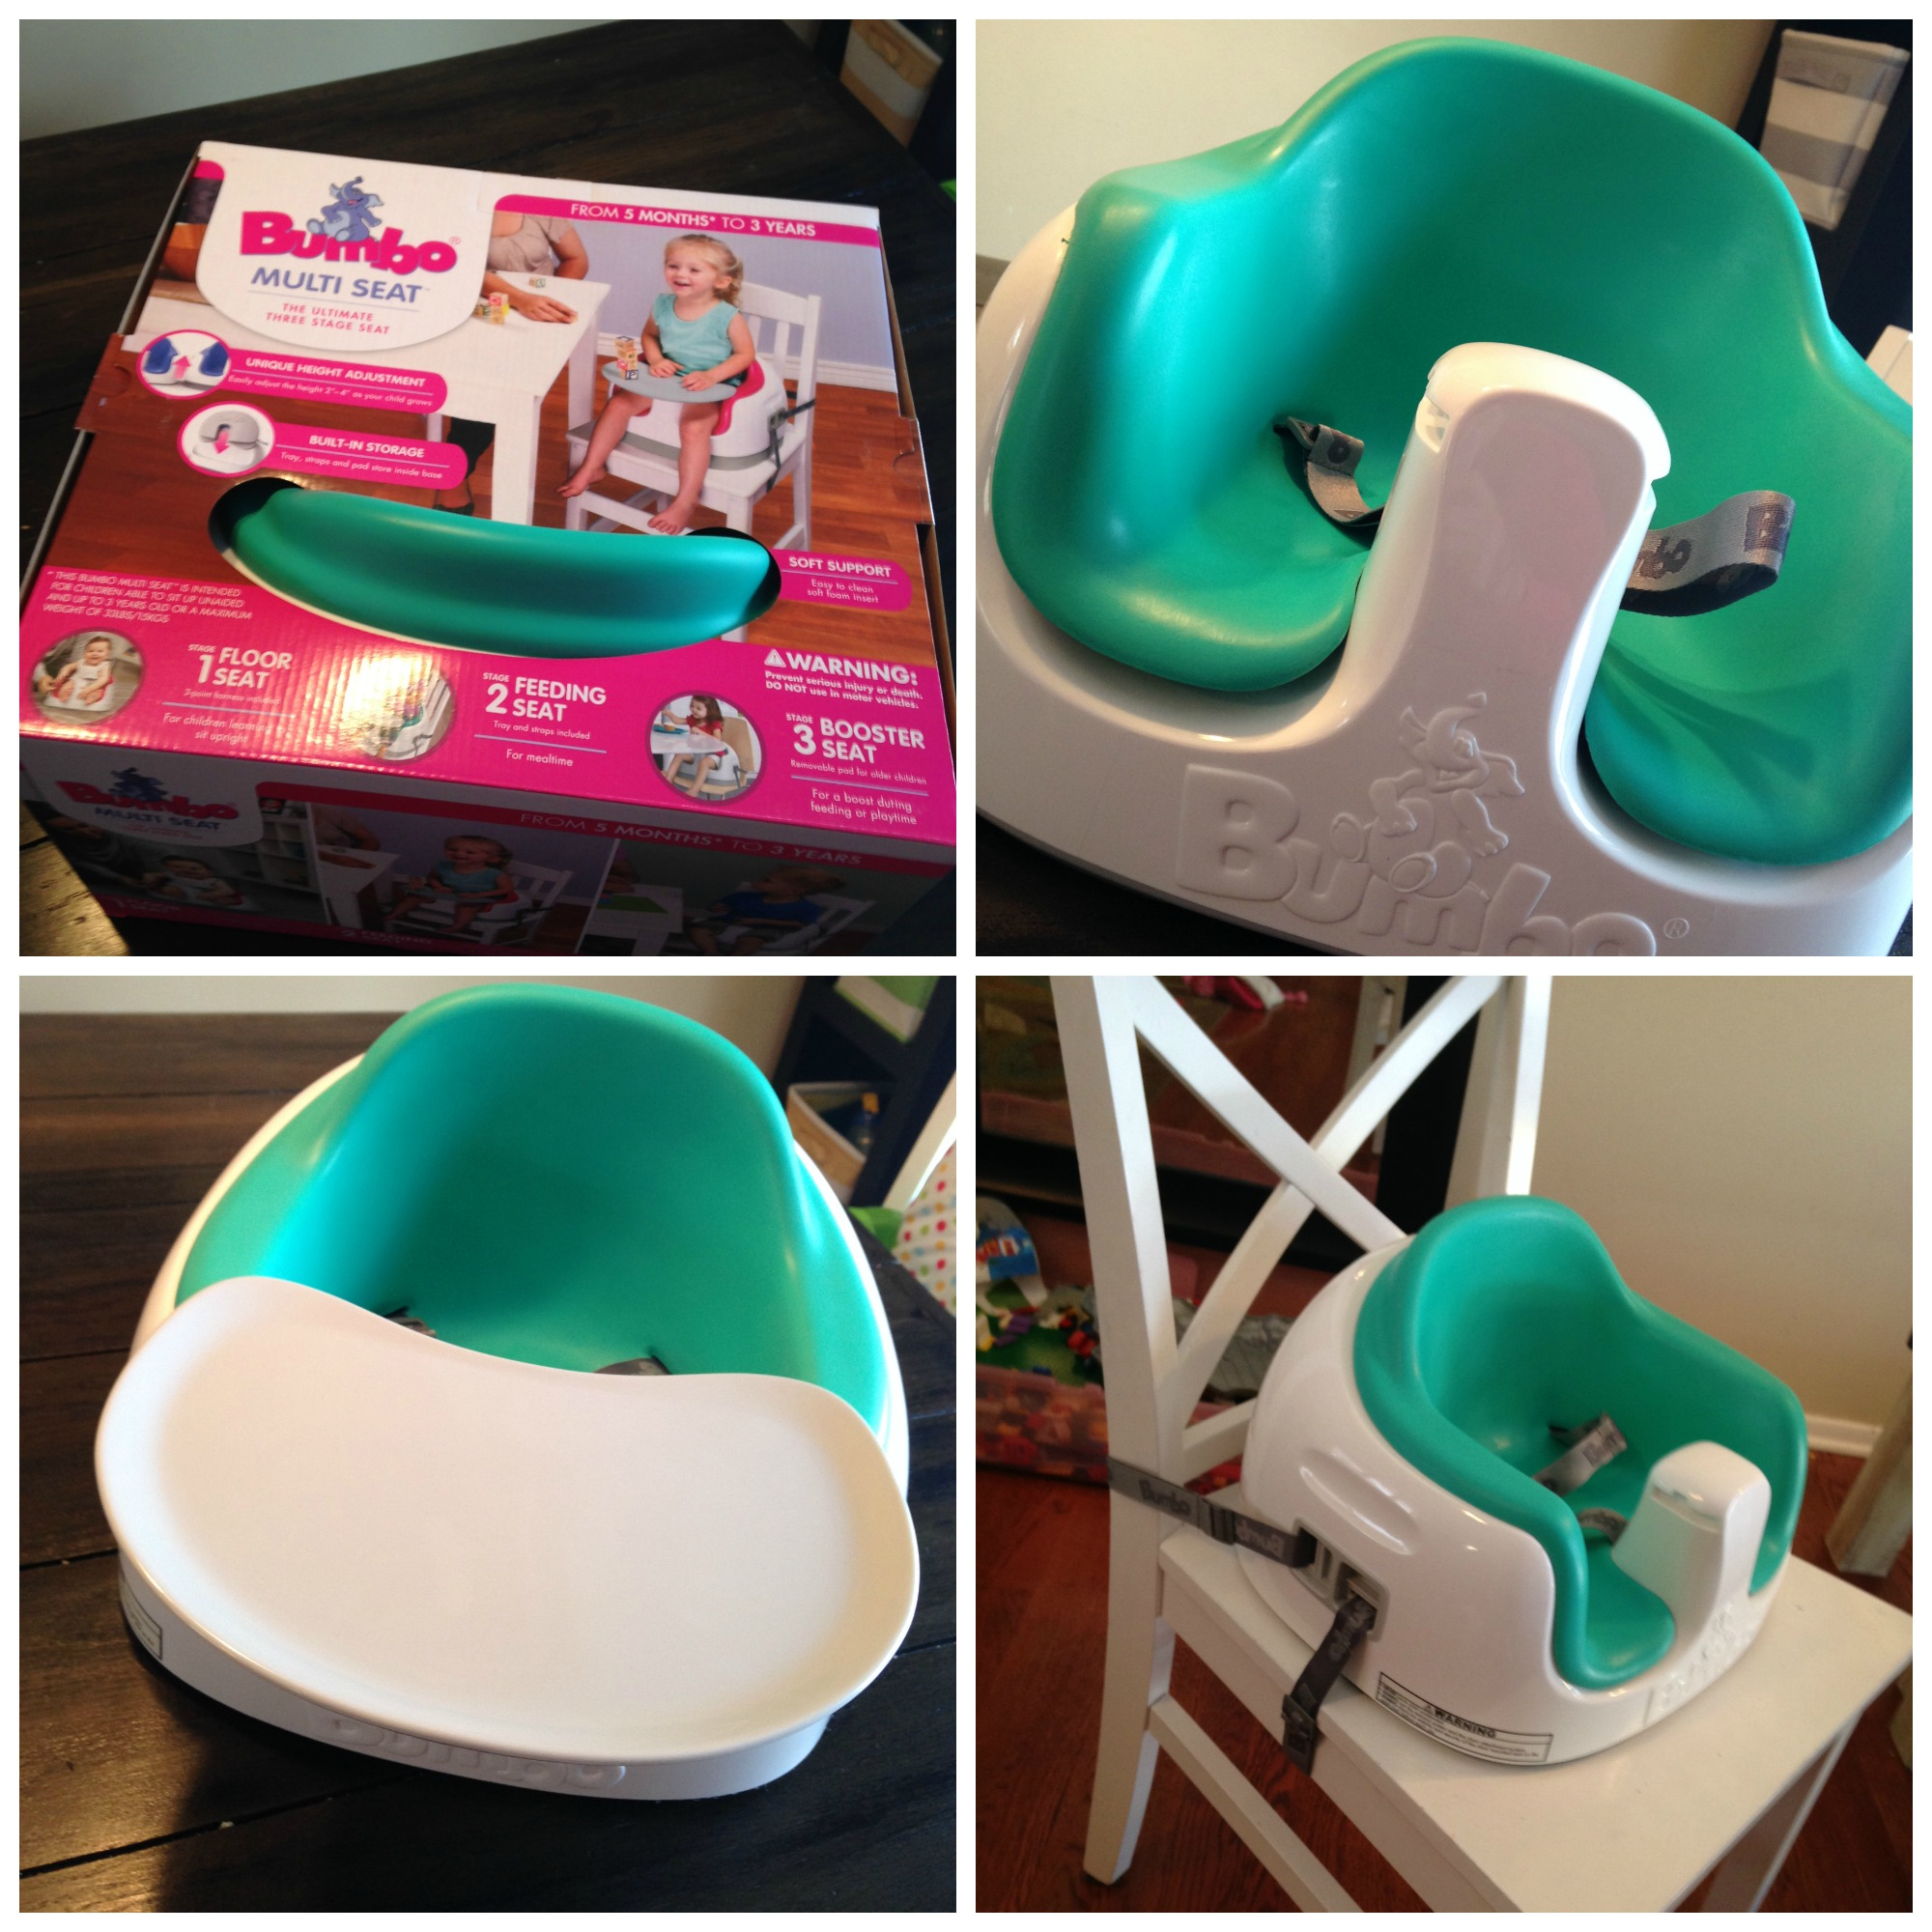 PicMonkey Collage & NEW Bumbo USA Multi Seat Review- The Ultimate Seat from Floor to Chair